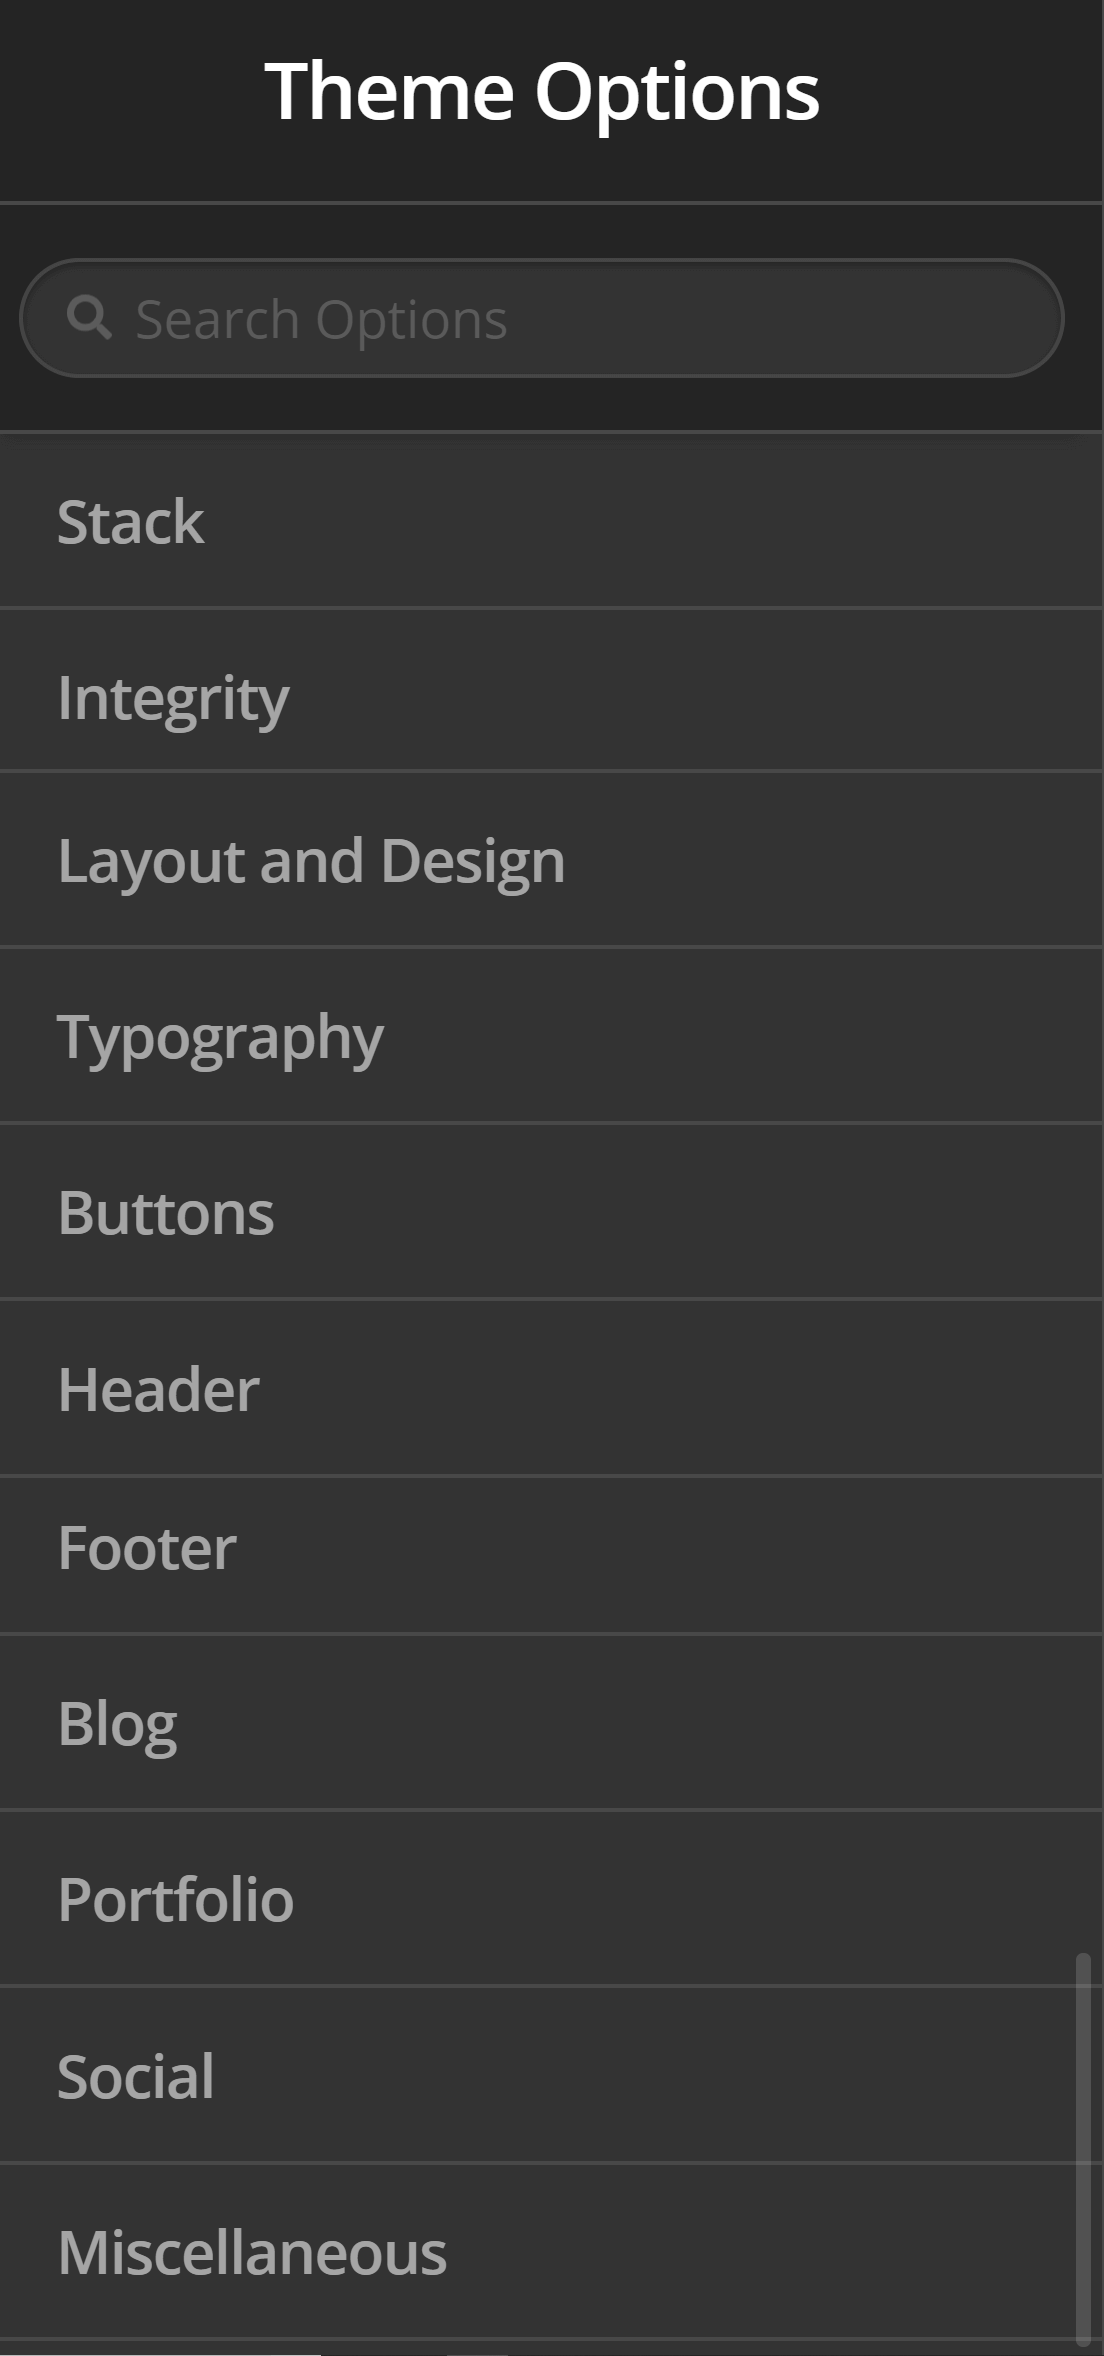 Theme Options Buttons